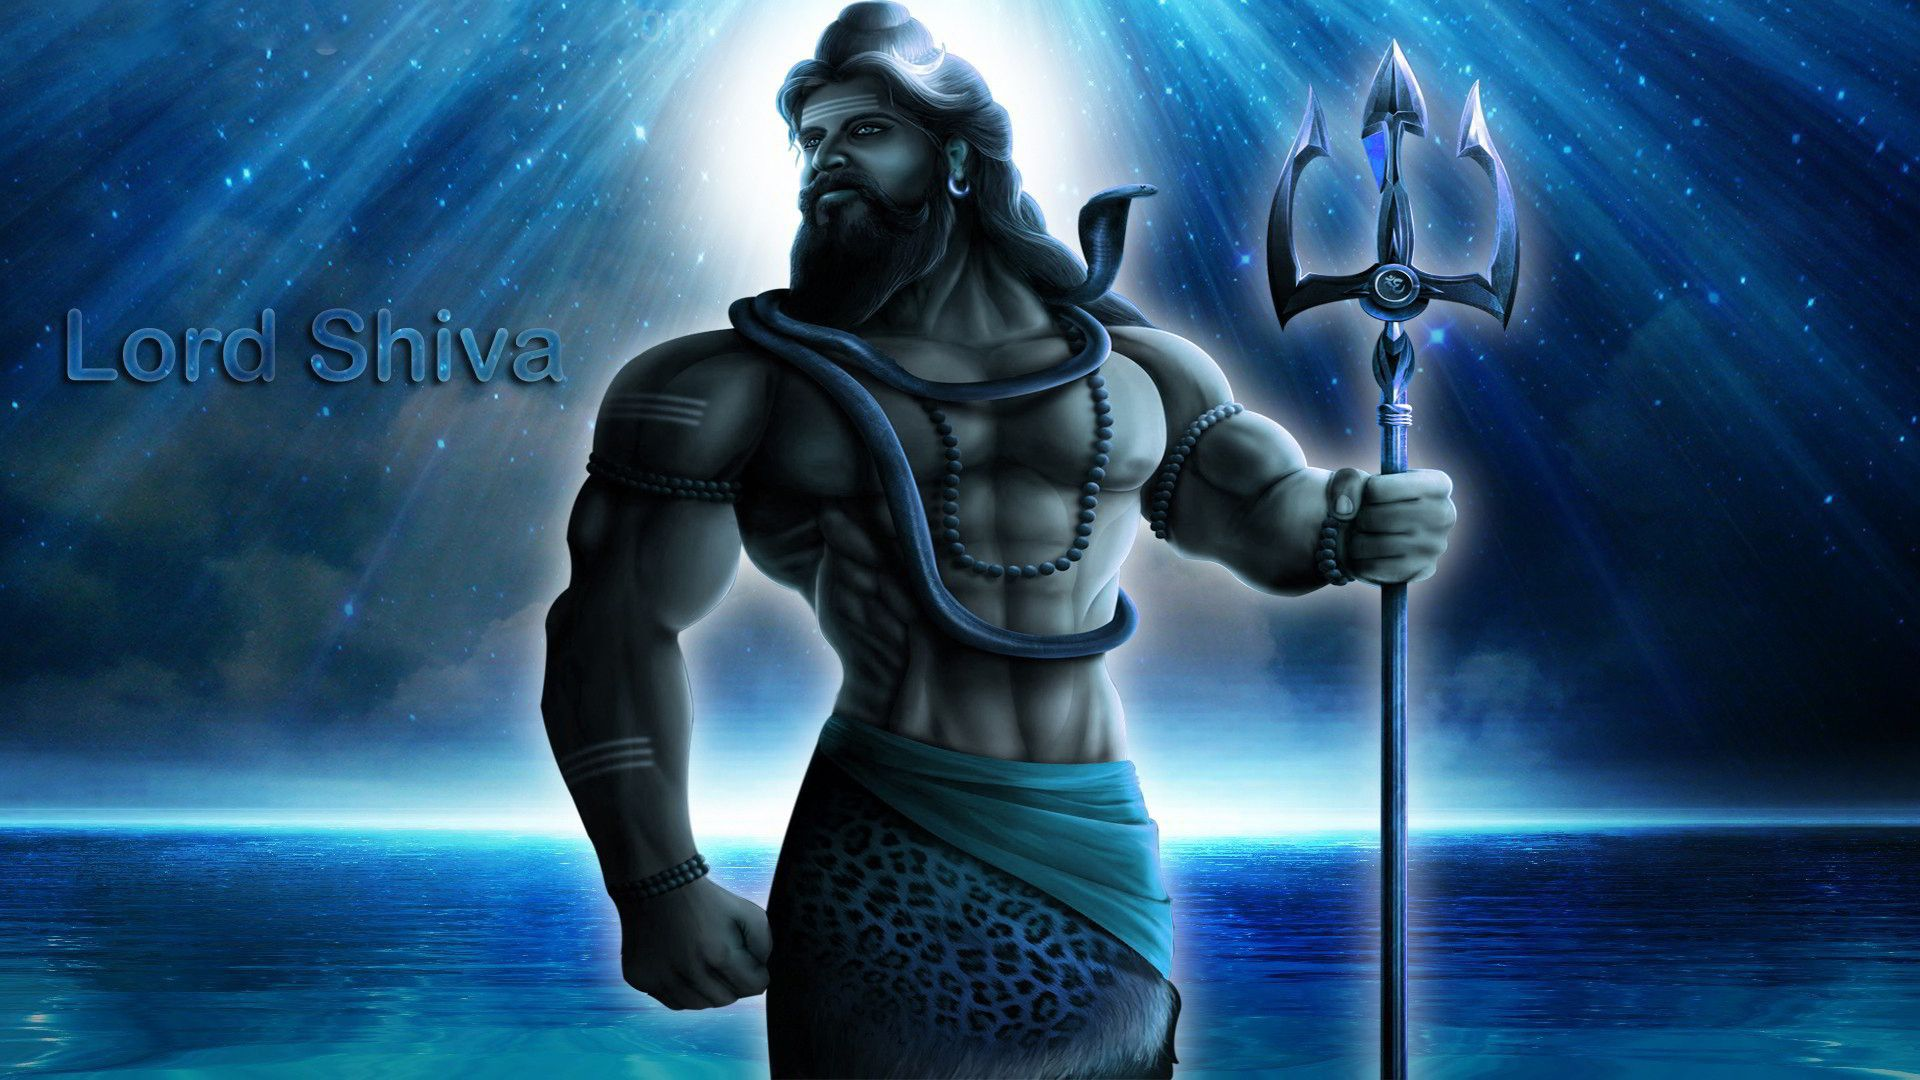 Bholenath Wallpaper 3d Lord Shiva Hd Wallpaper Angry Lord Shiva Lord Shiva Hd Images